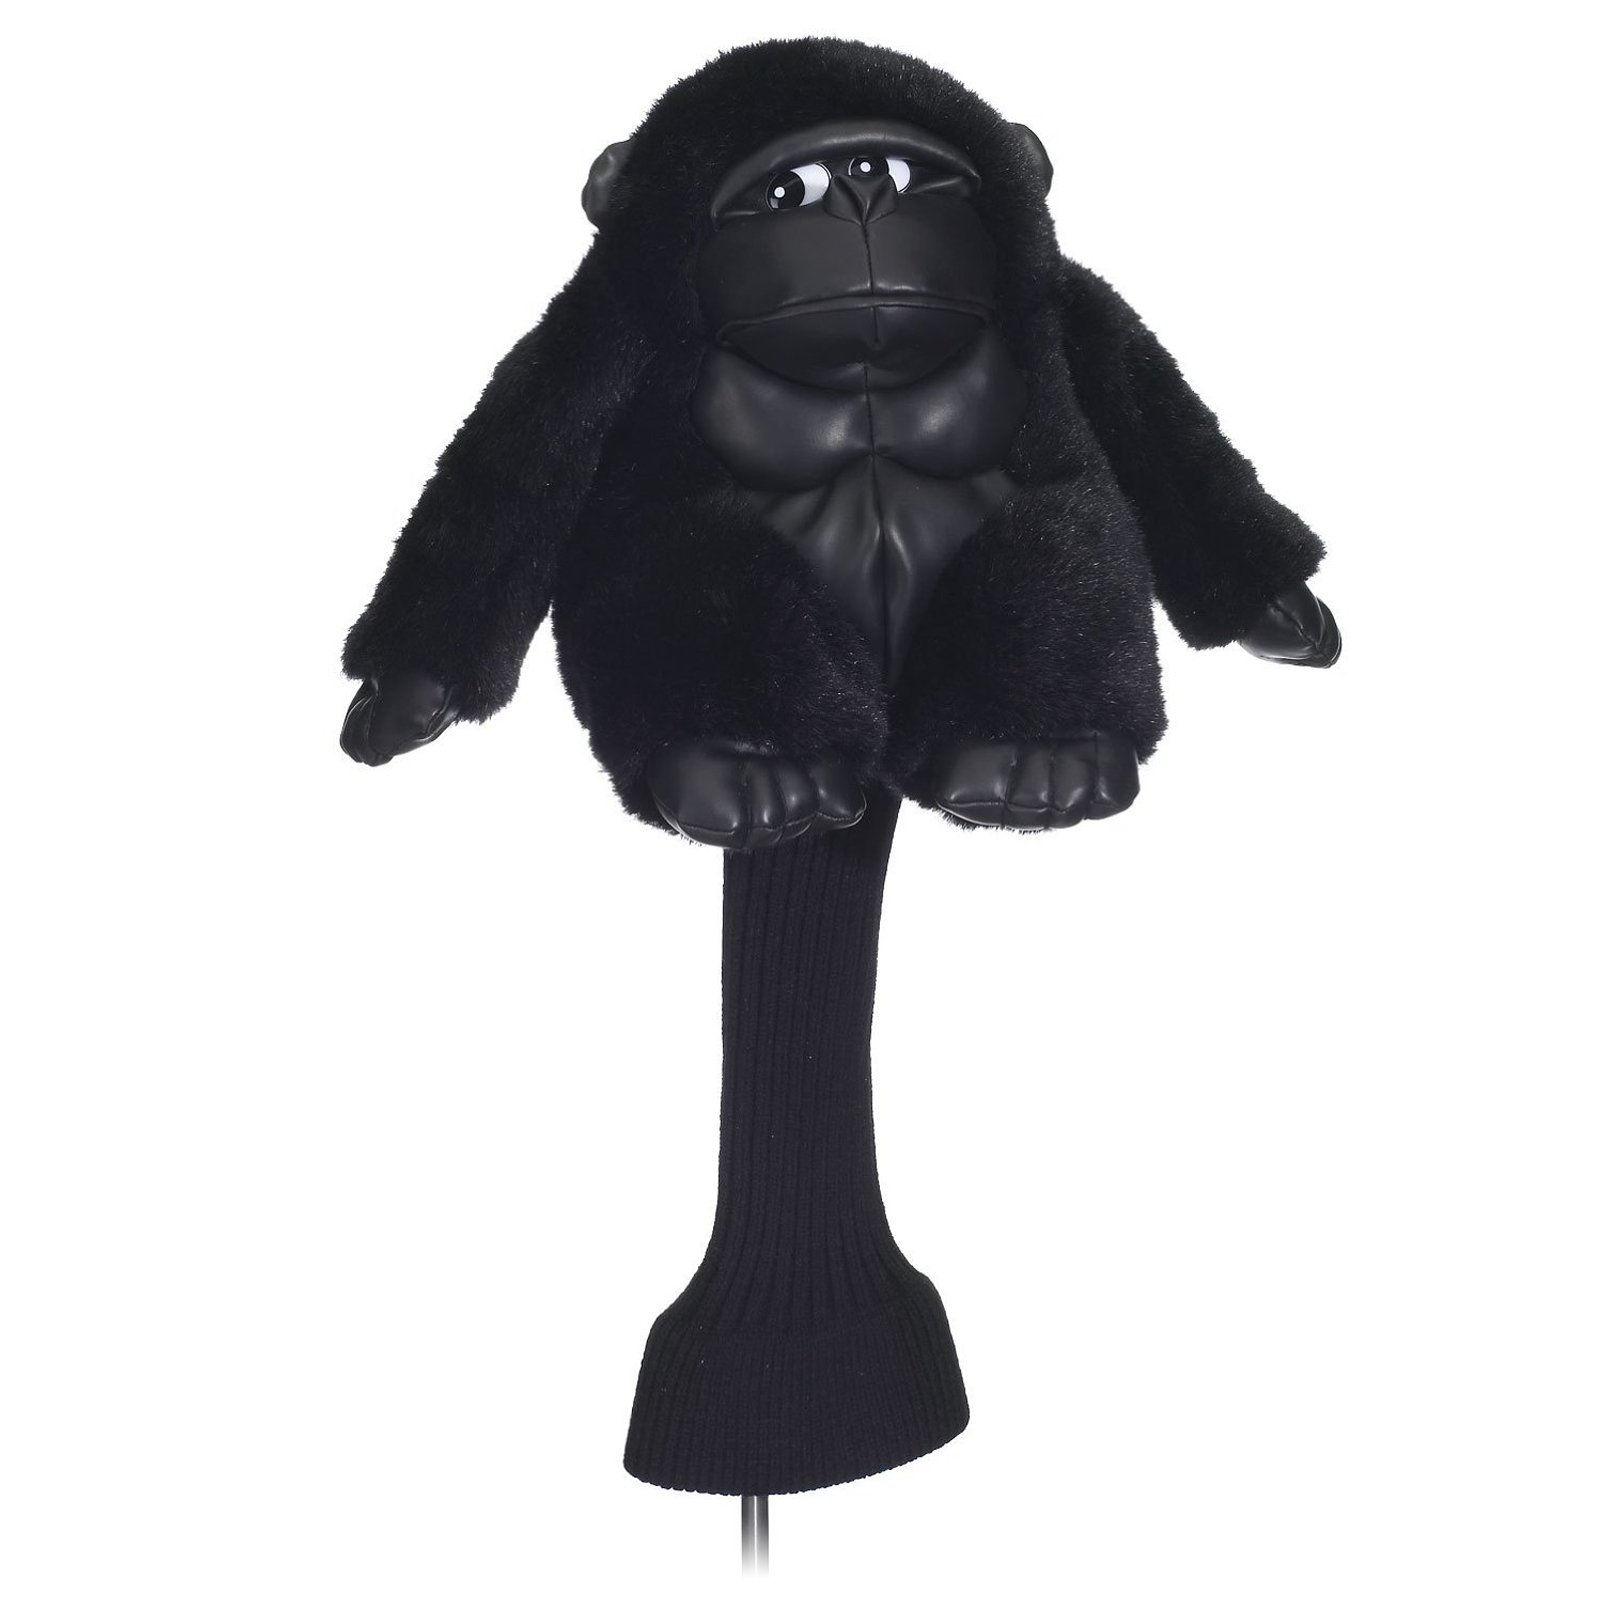 Golf Head Cover Gorilla 460cc Driver Wood Sporting Goods Headcover Accessory